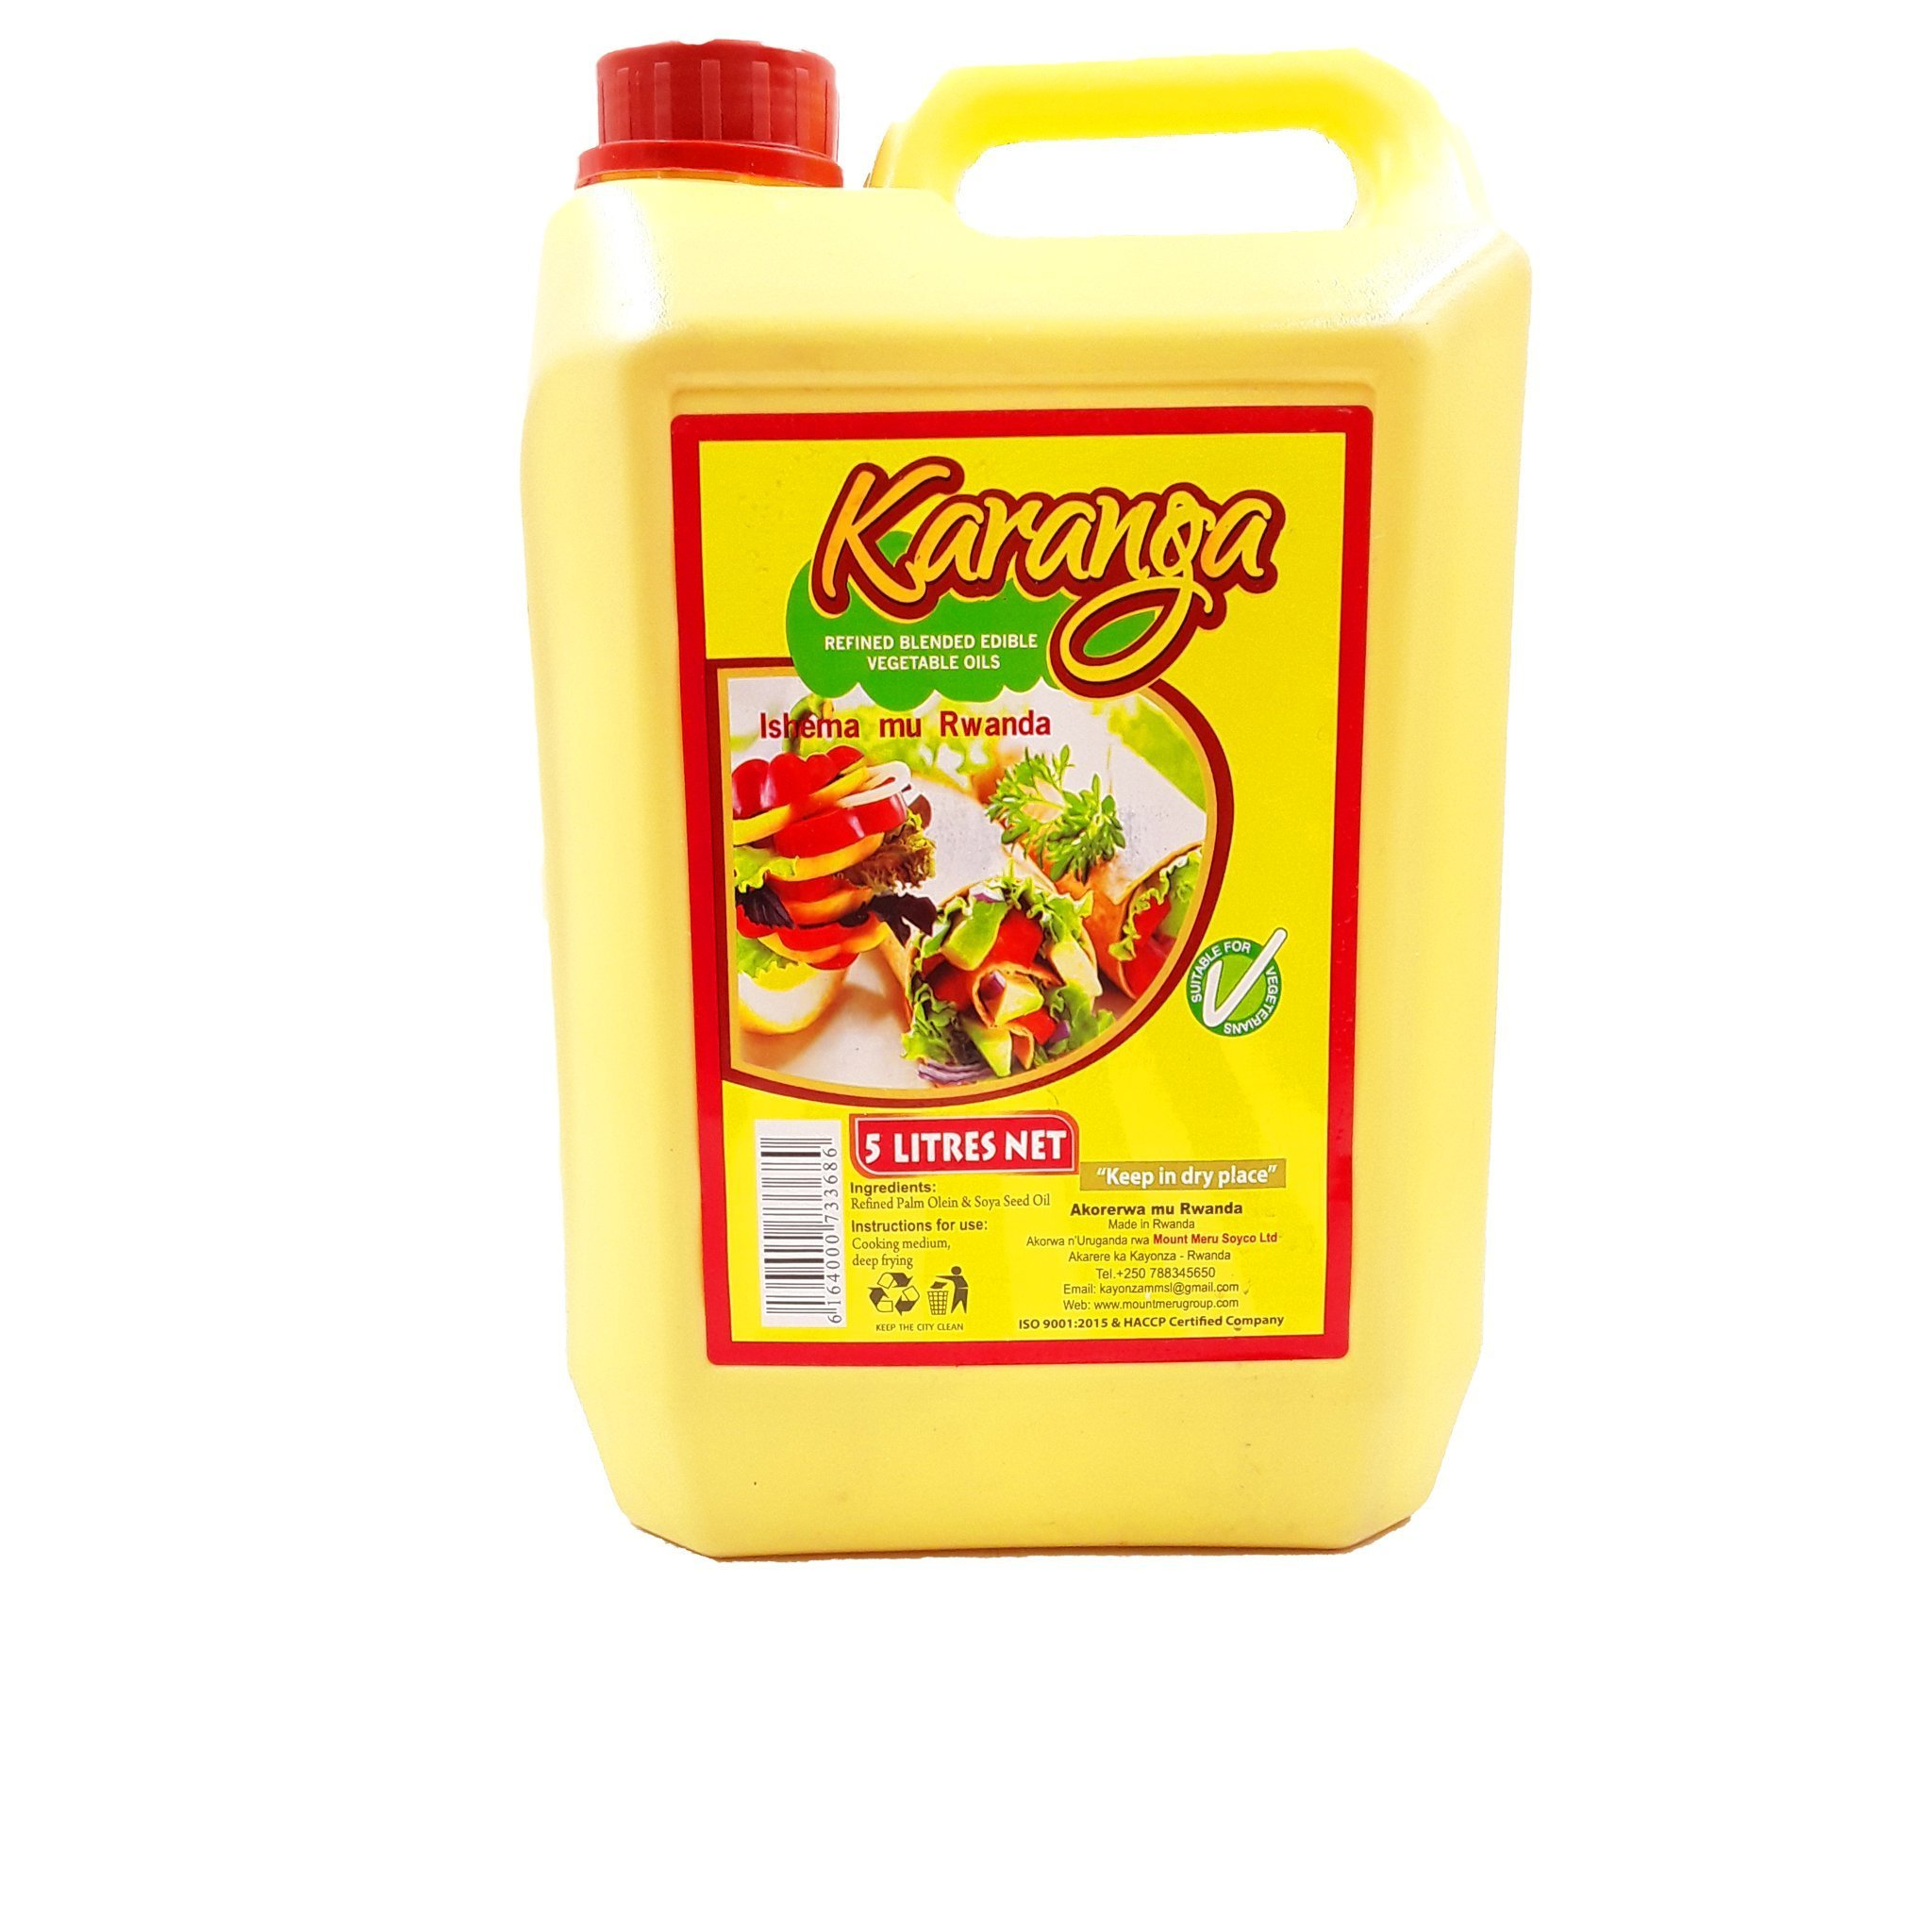 Karanga Oil/ 5 L, Price: 7500 Rwf, Delivery Fees: 1000 Rwf